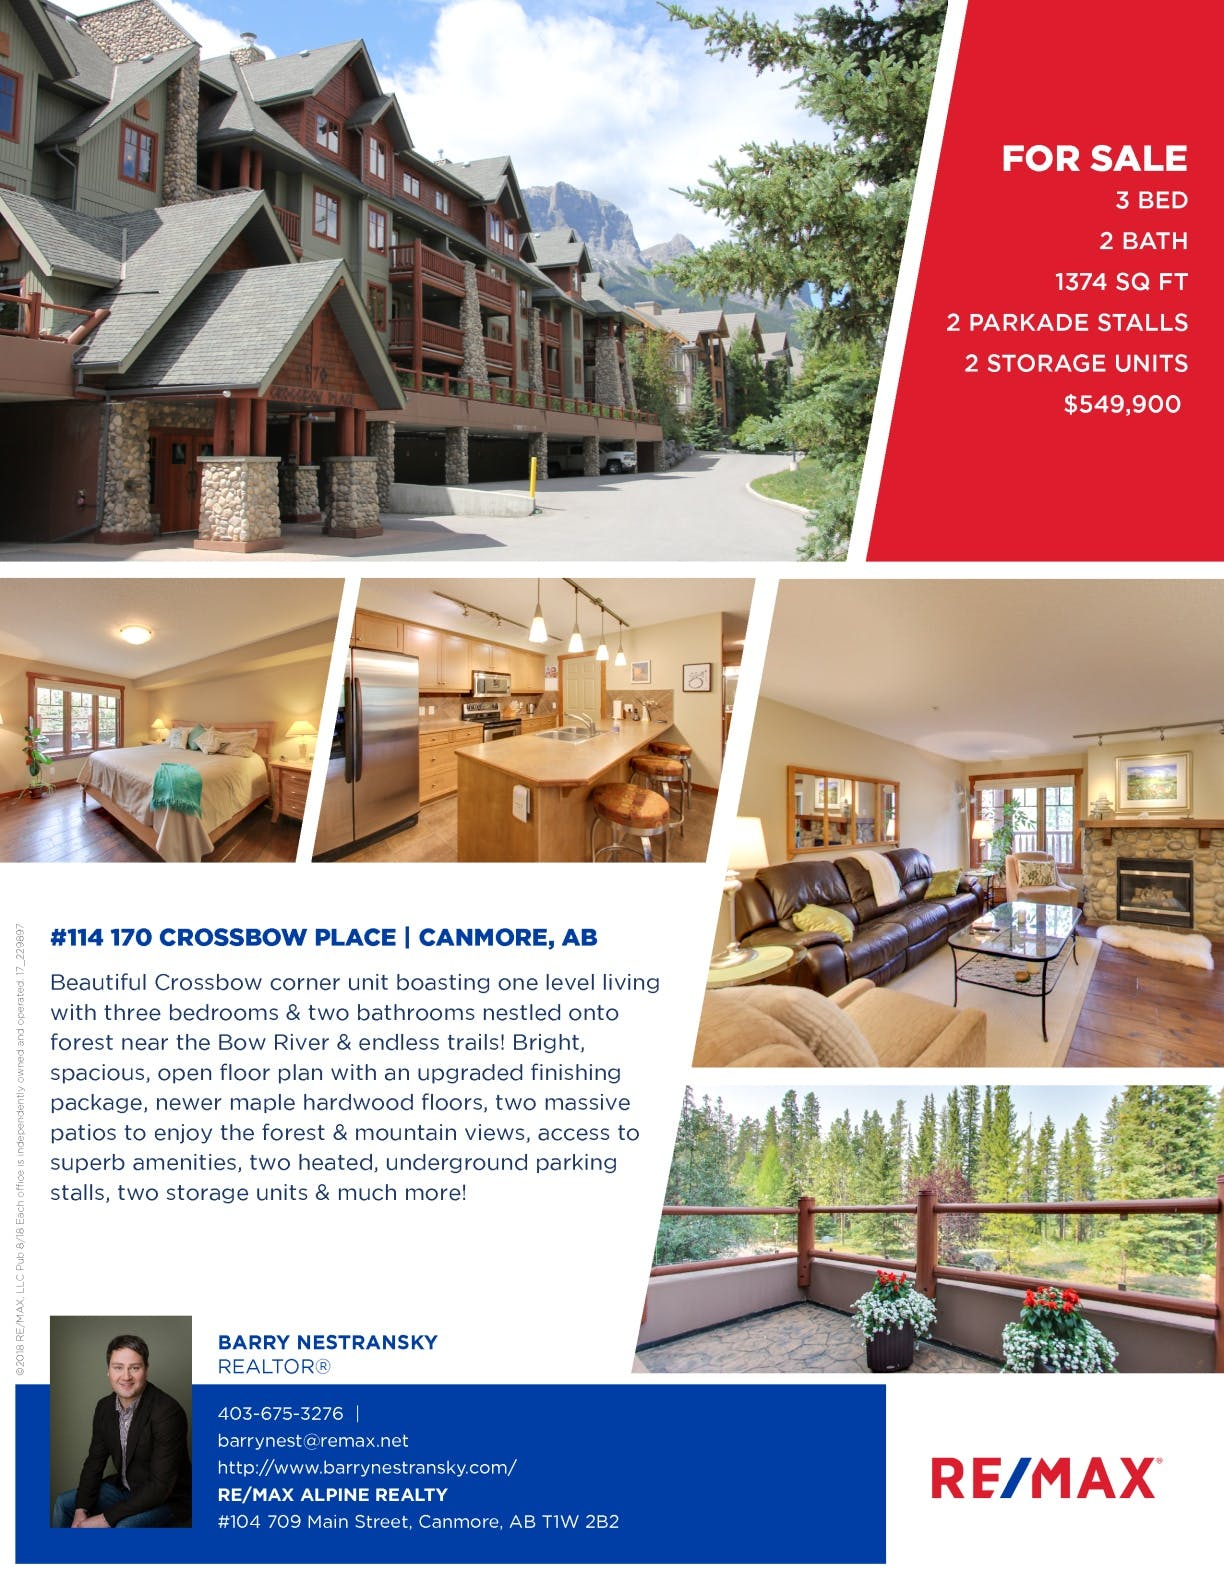 #114 170 Crossbow Place, Canmore